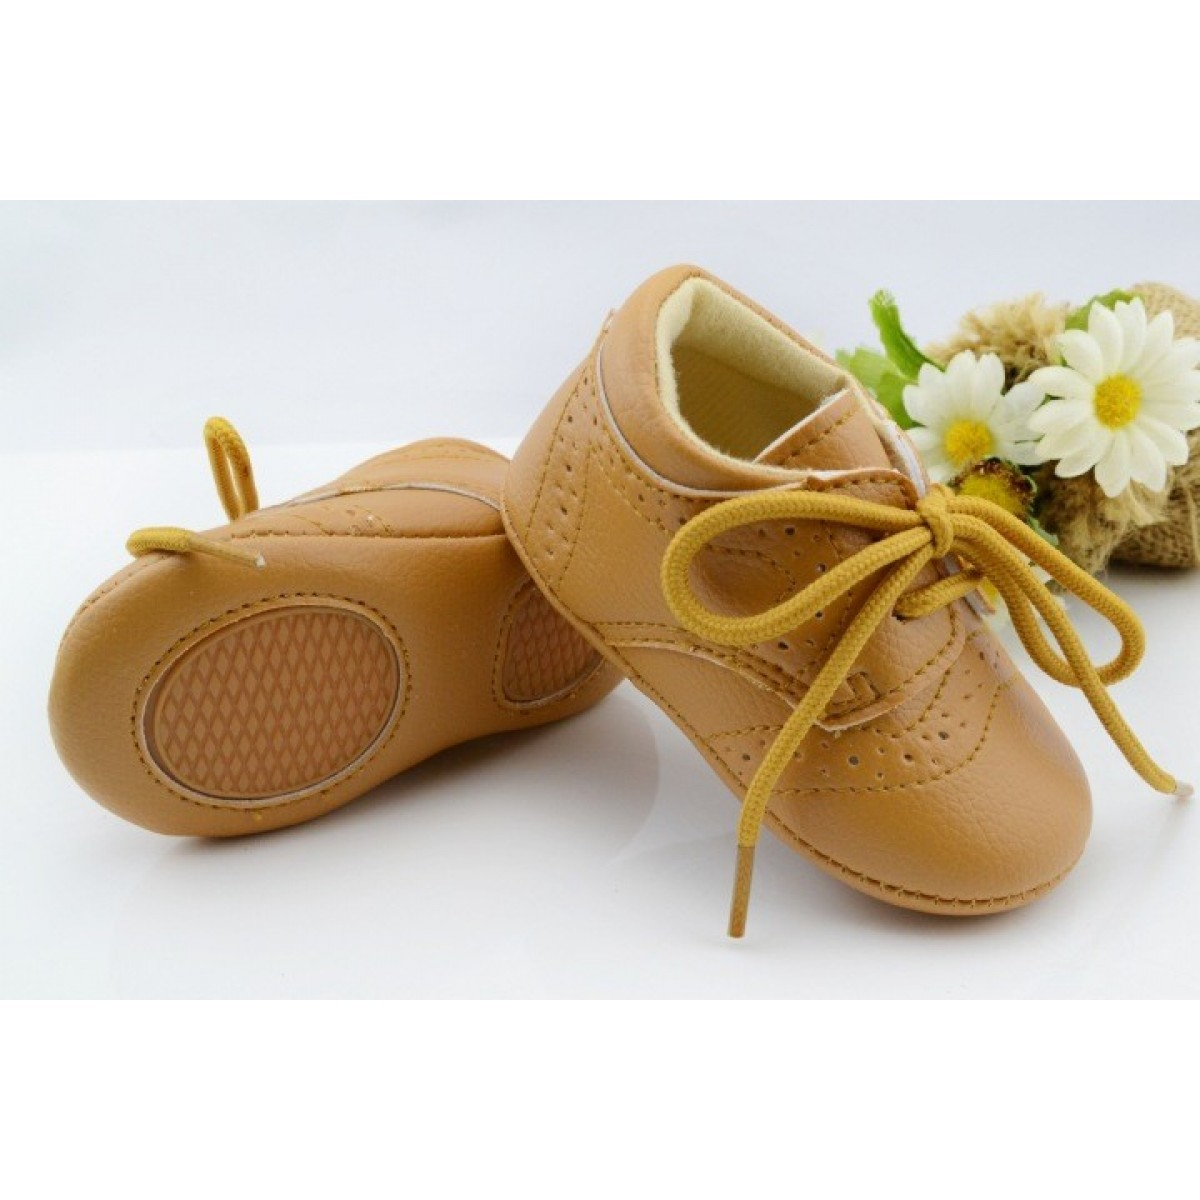 About TOMS Shoes for Babies. These soft and cozy baby shoes are sure to keep little feet comfortable and happy. Like the adult TOMS you love, the crib Alpargata and our other baby TOMS make a great gift for new parents.